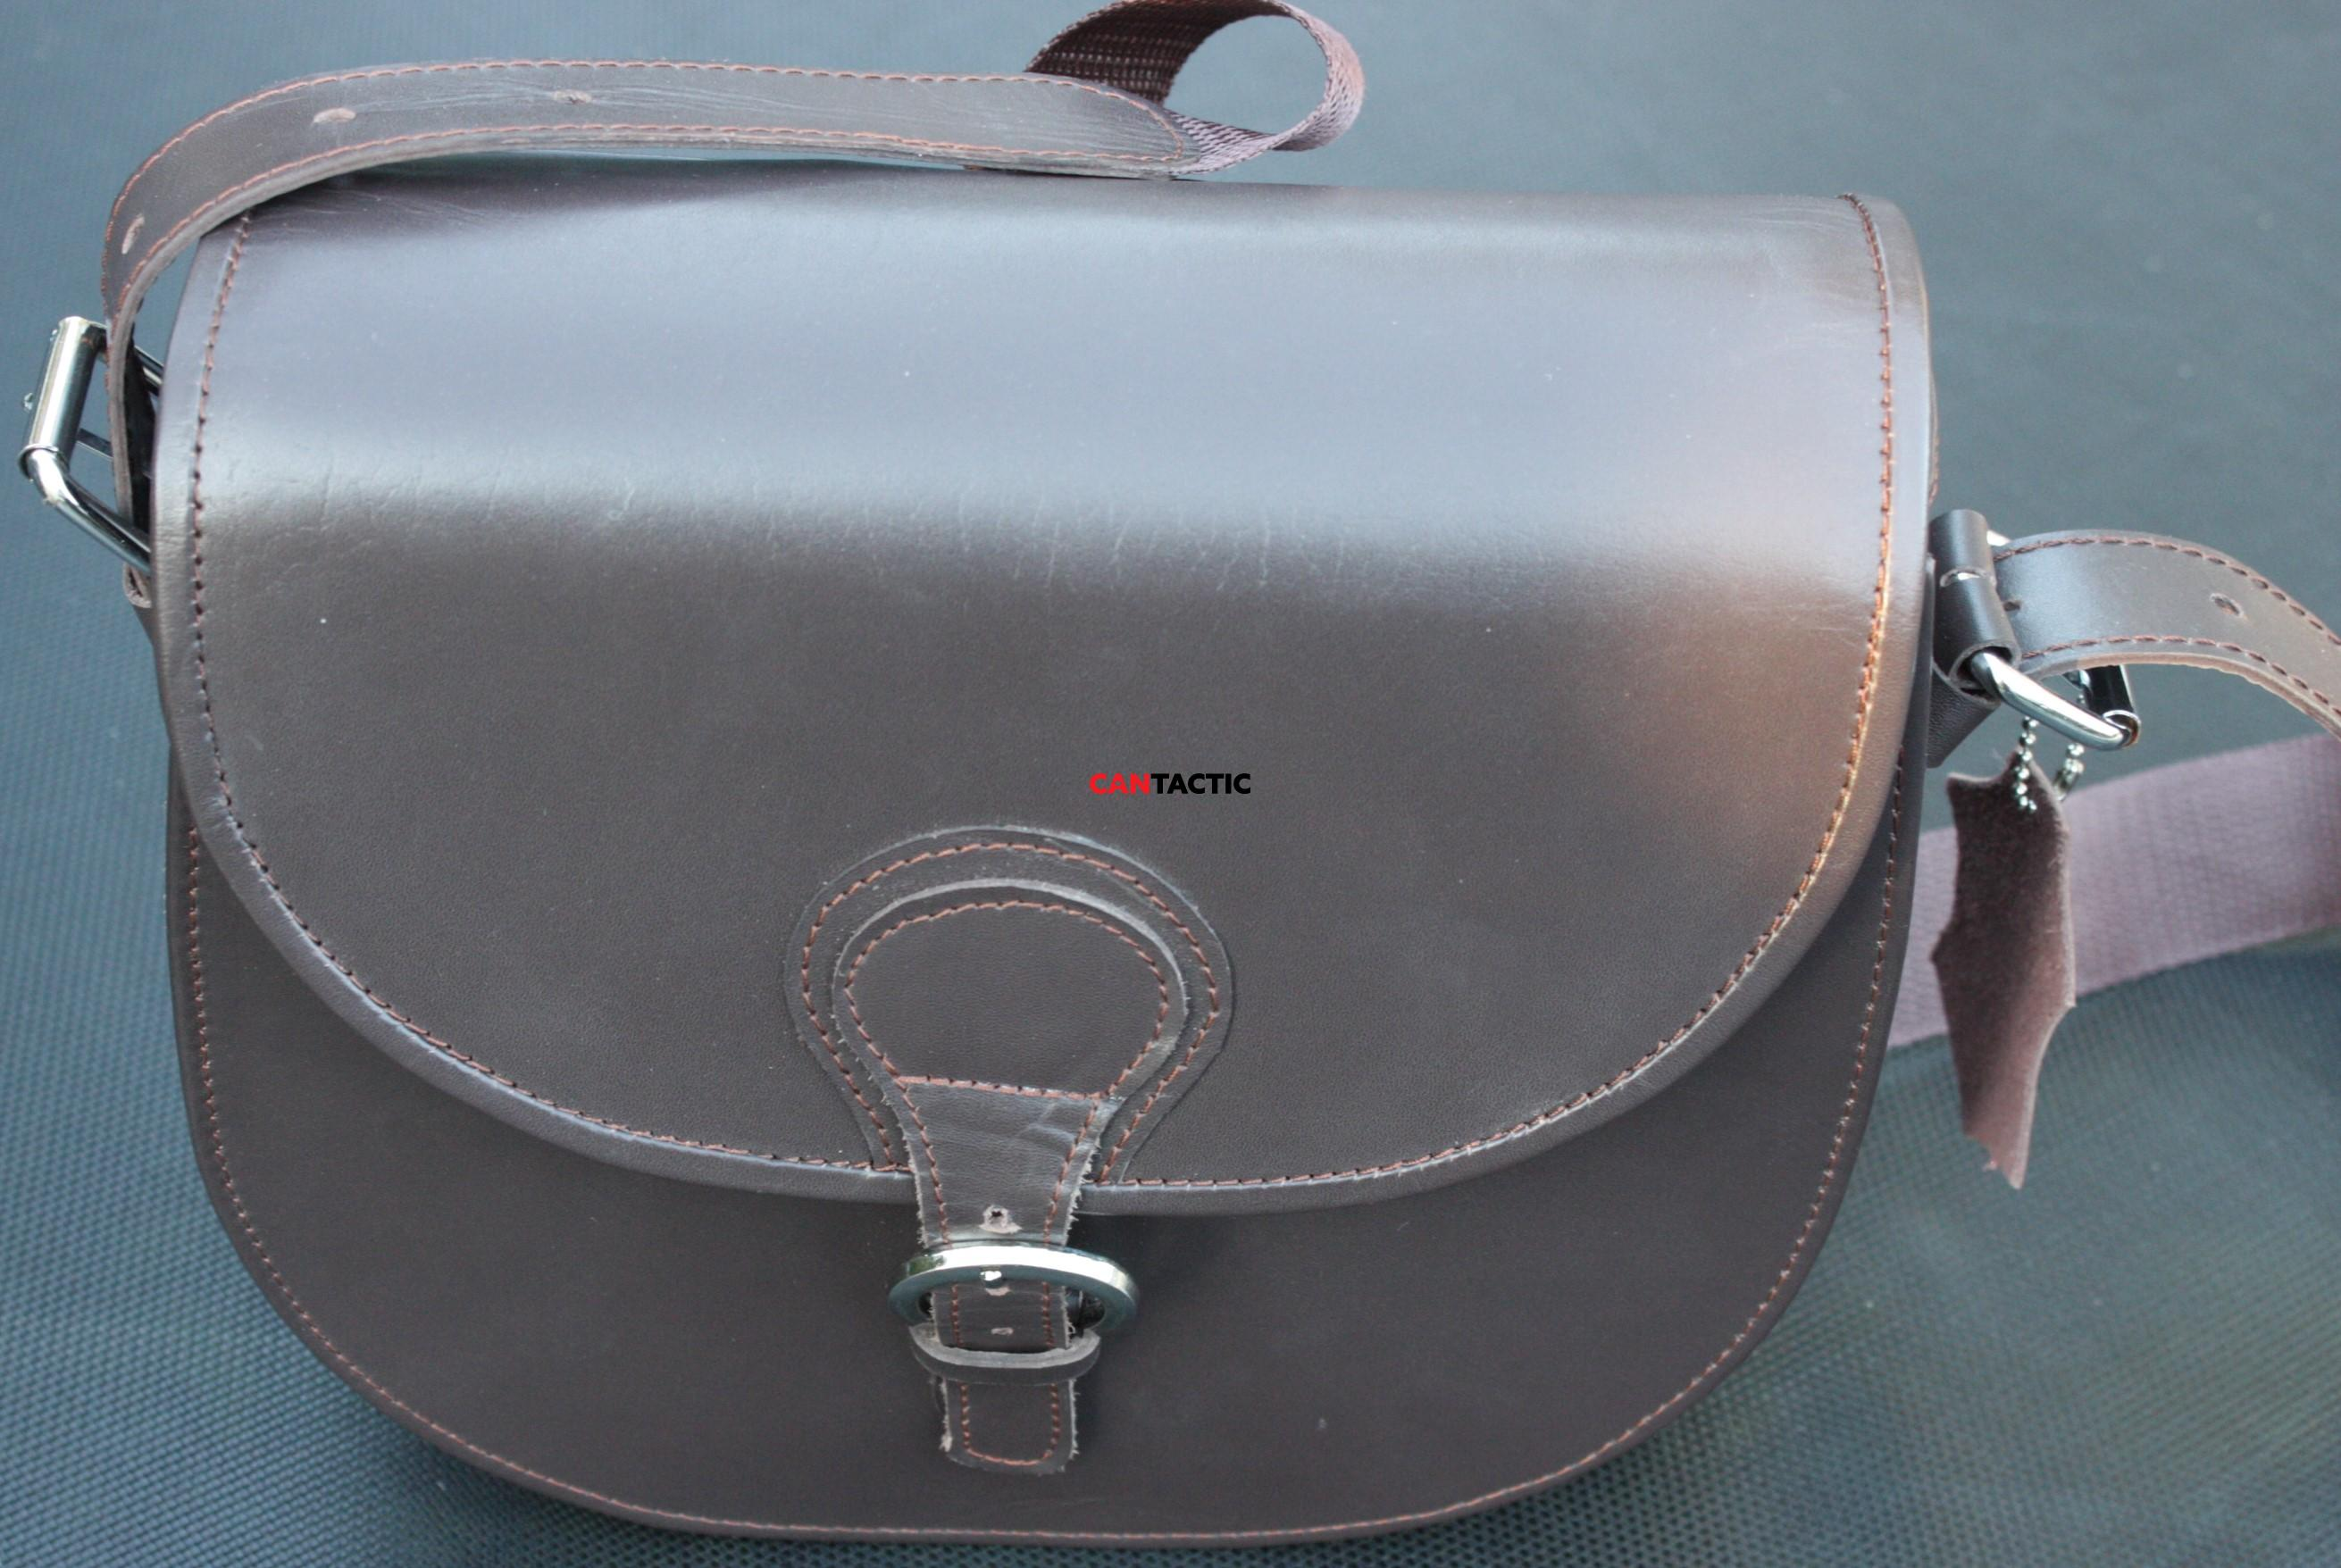 Single compartment leather bag